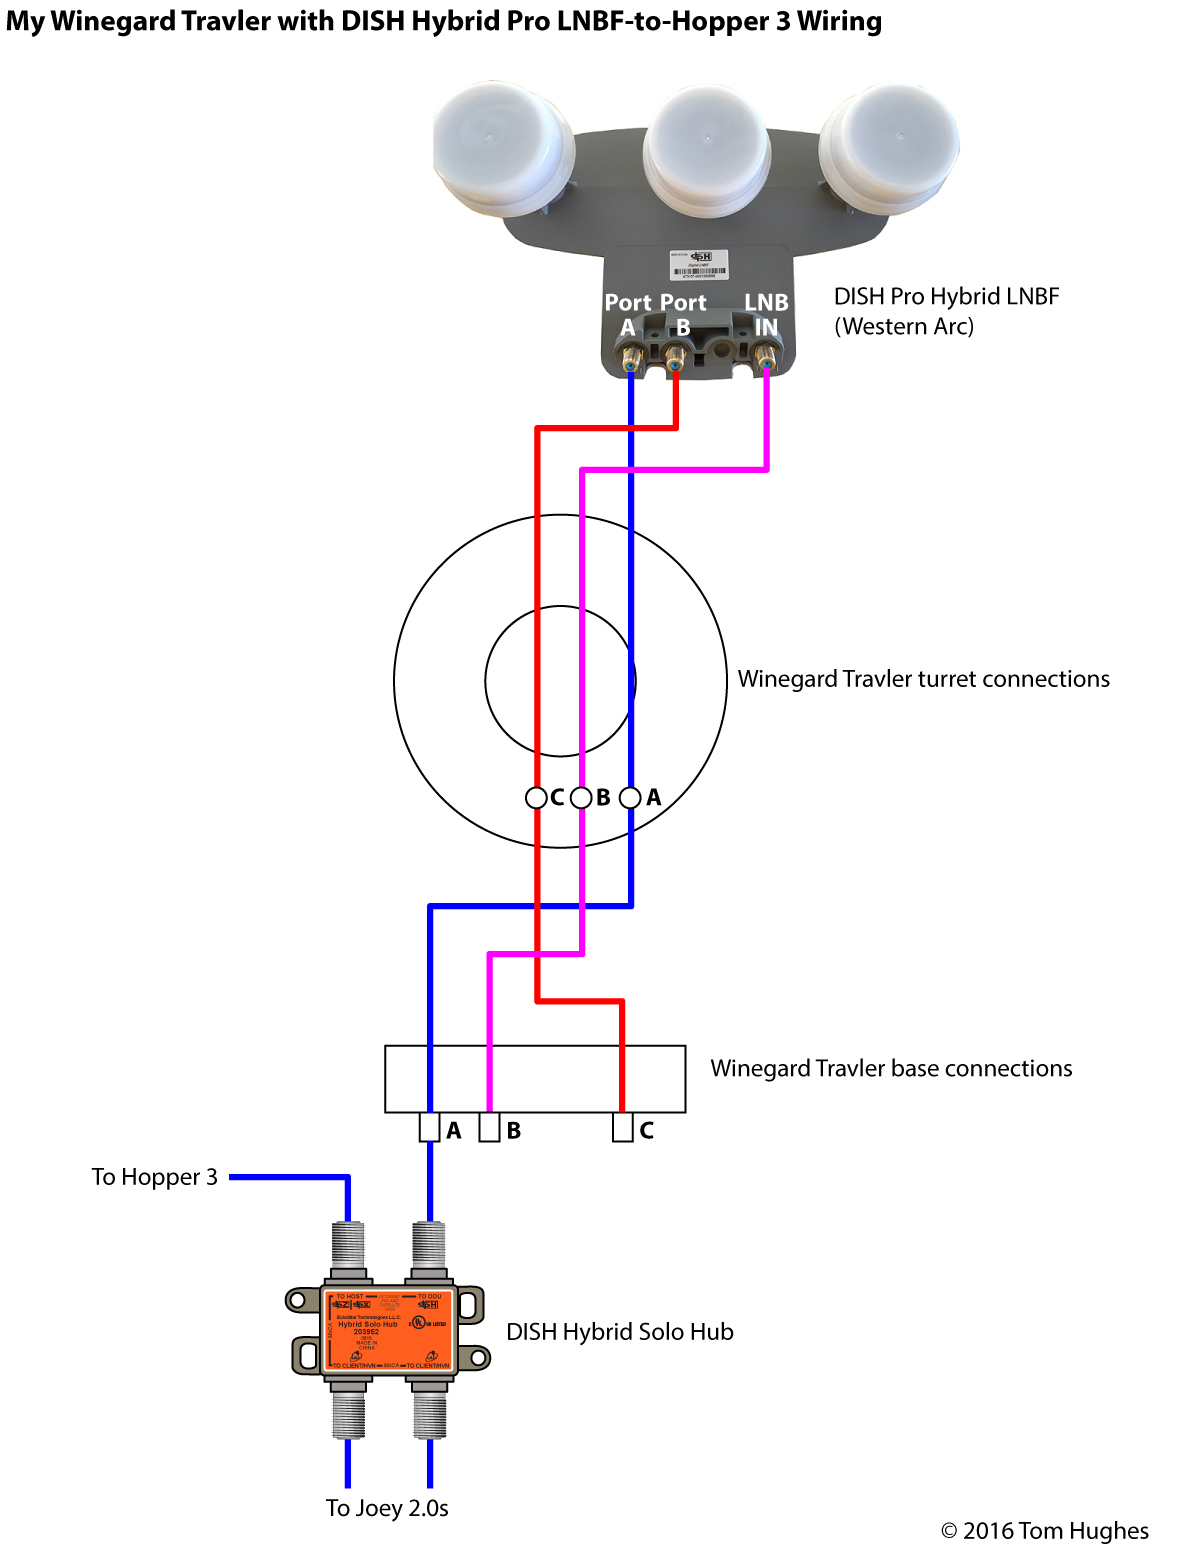 Dish 500 Lnb Wiring Diagram from rvseniormoments.files.wordpress.com